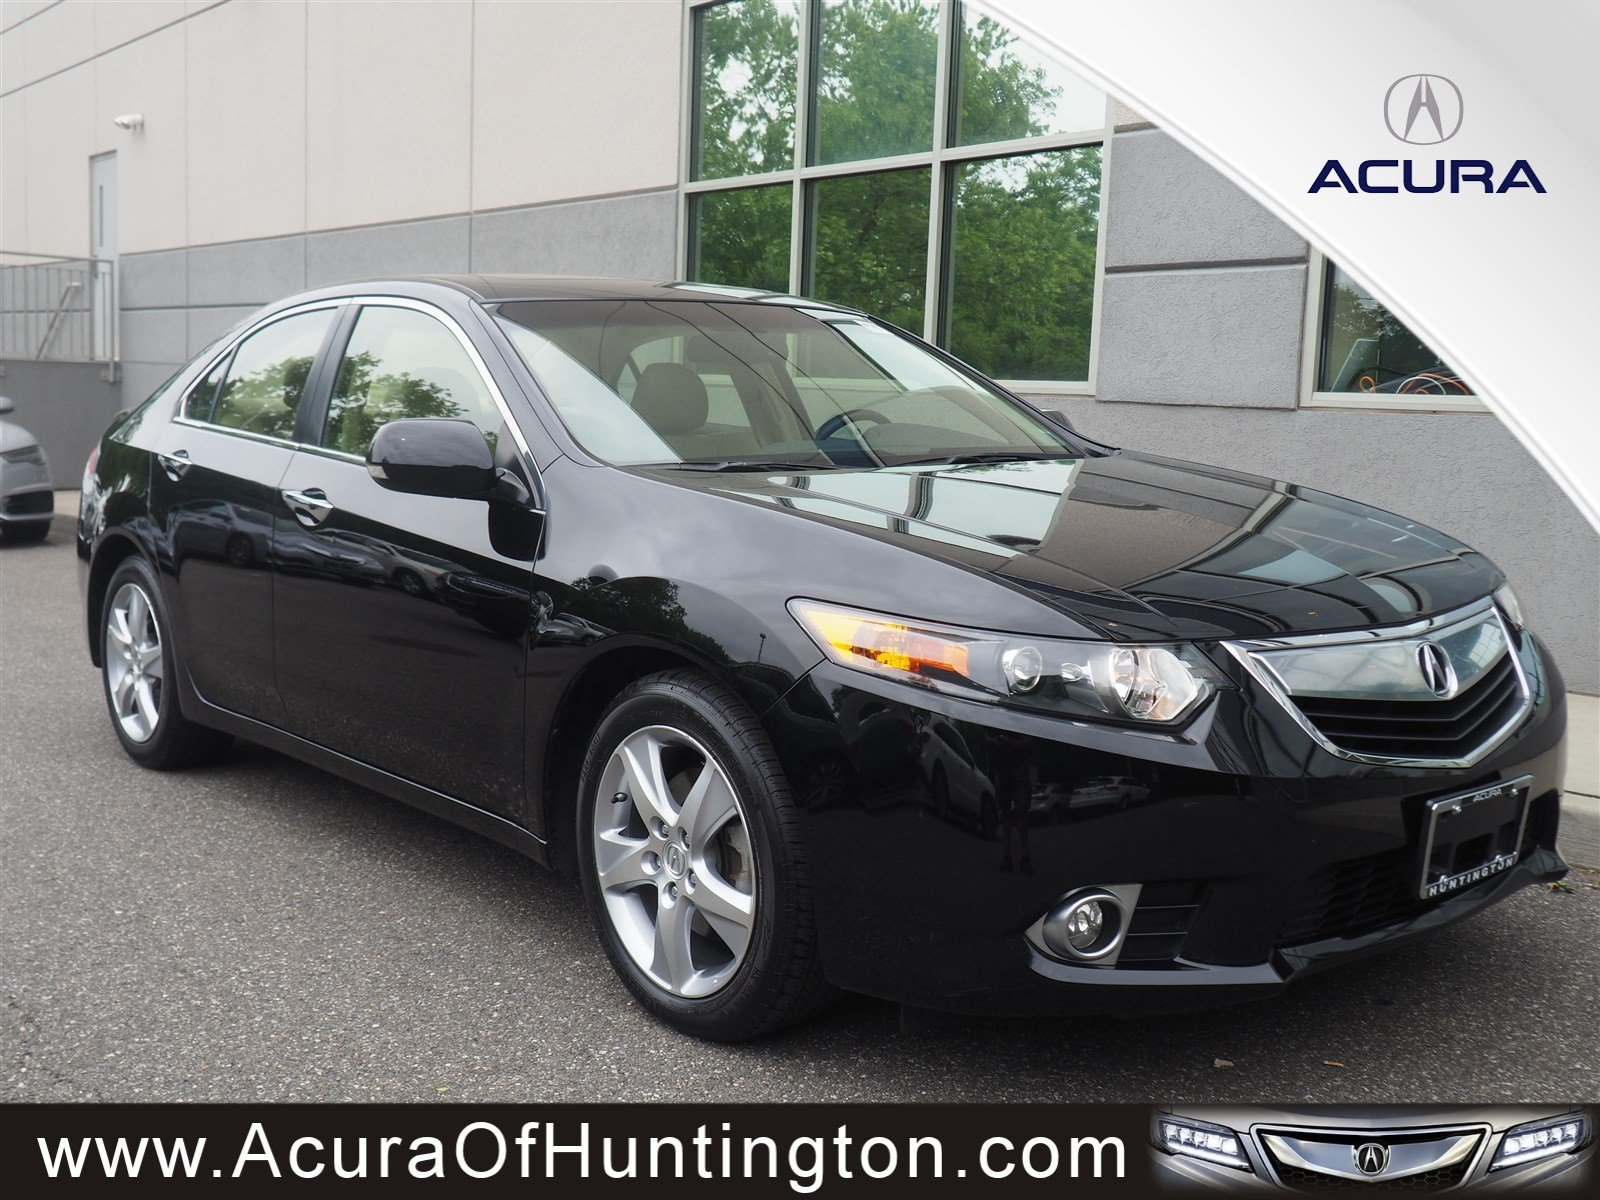 pre owned 2013 acura tsx 2 4 4dr car in huntington ua7066 acura of huntington. Black Bedroom Furniture Sets. Home Design Ideas